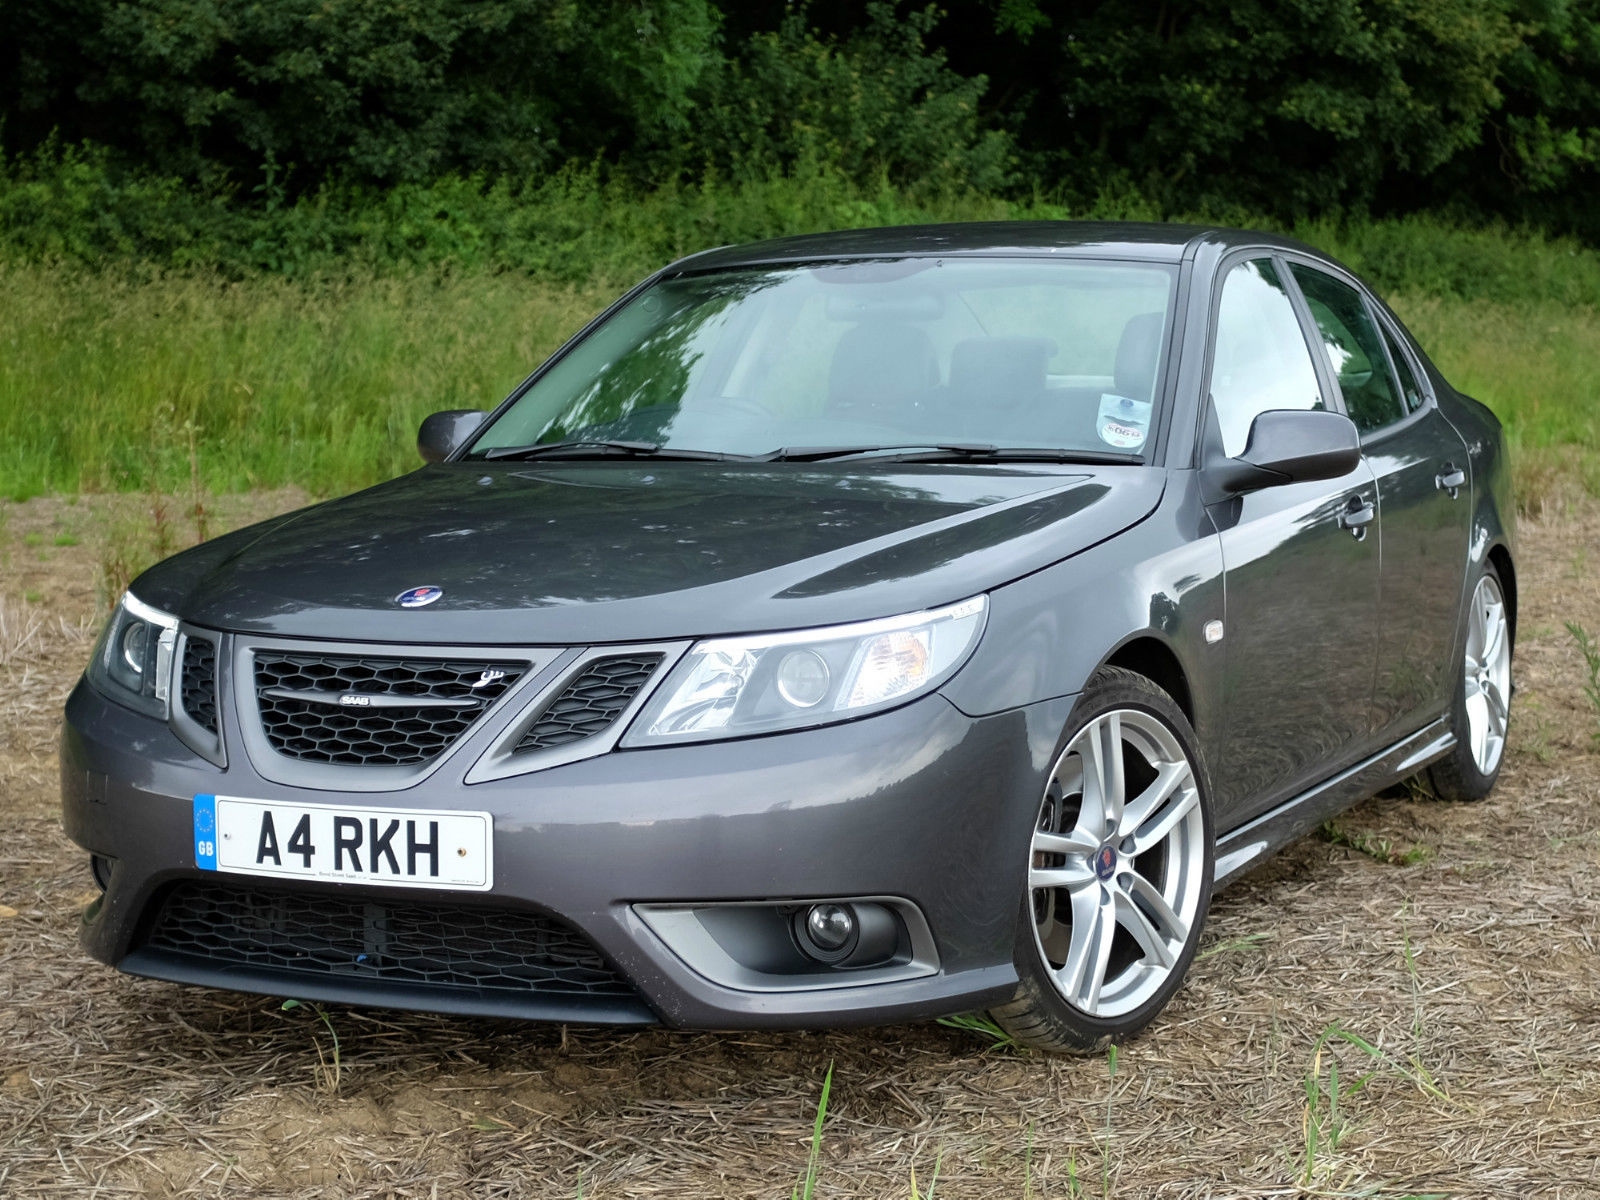 Unique Saab 9-3 TTiD Hirsch 200bhp on eBay